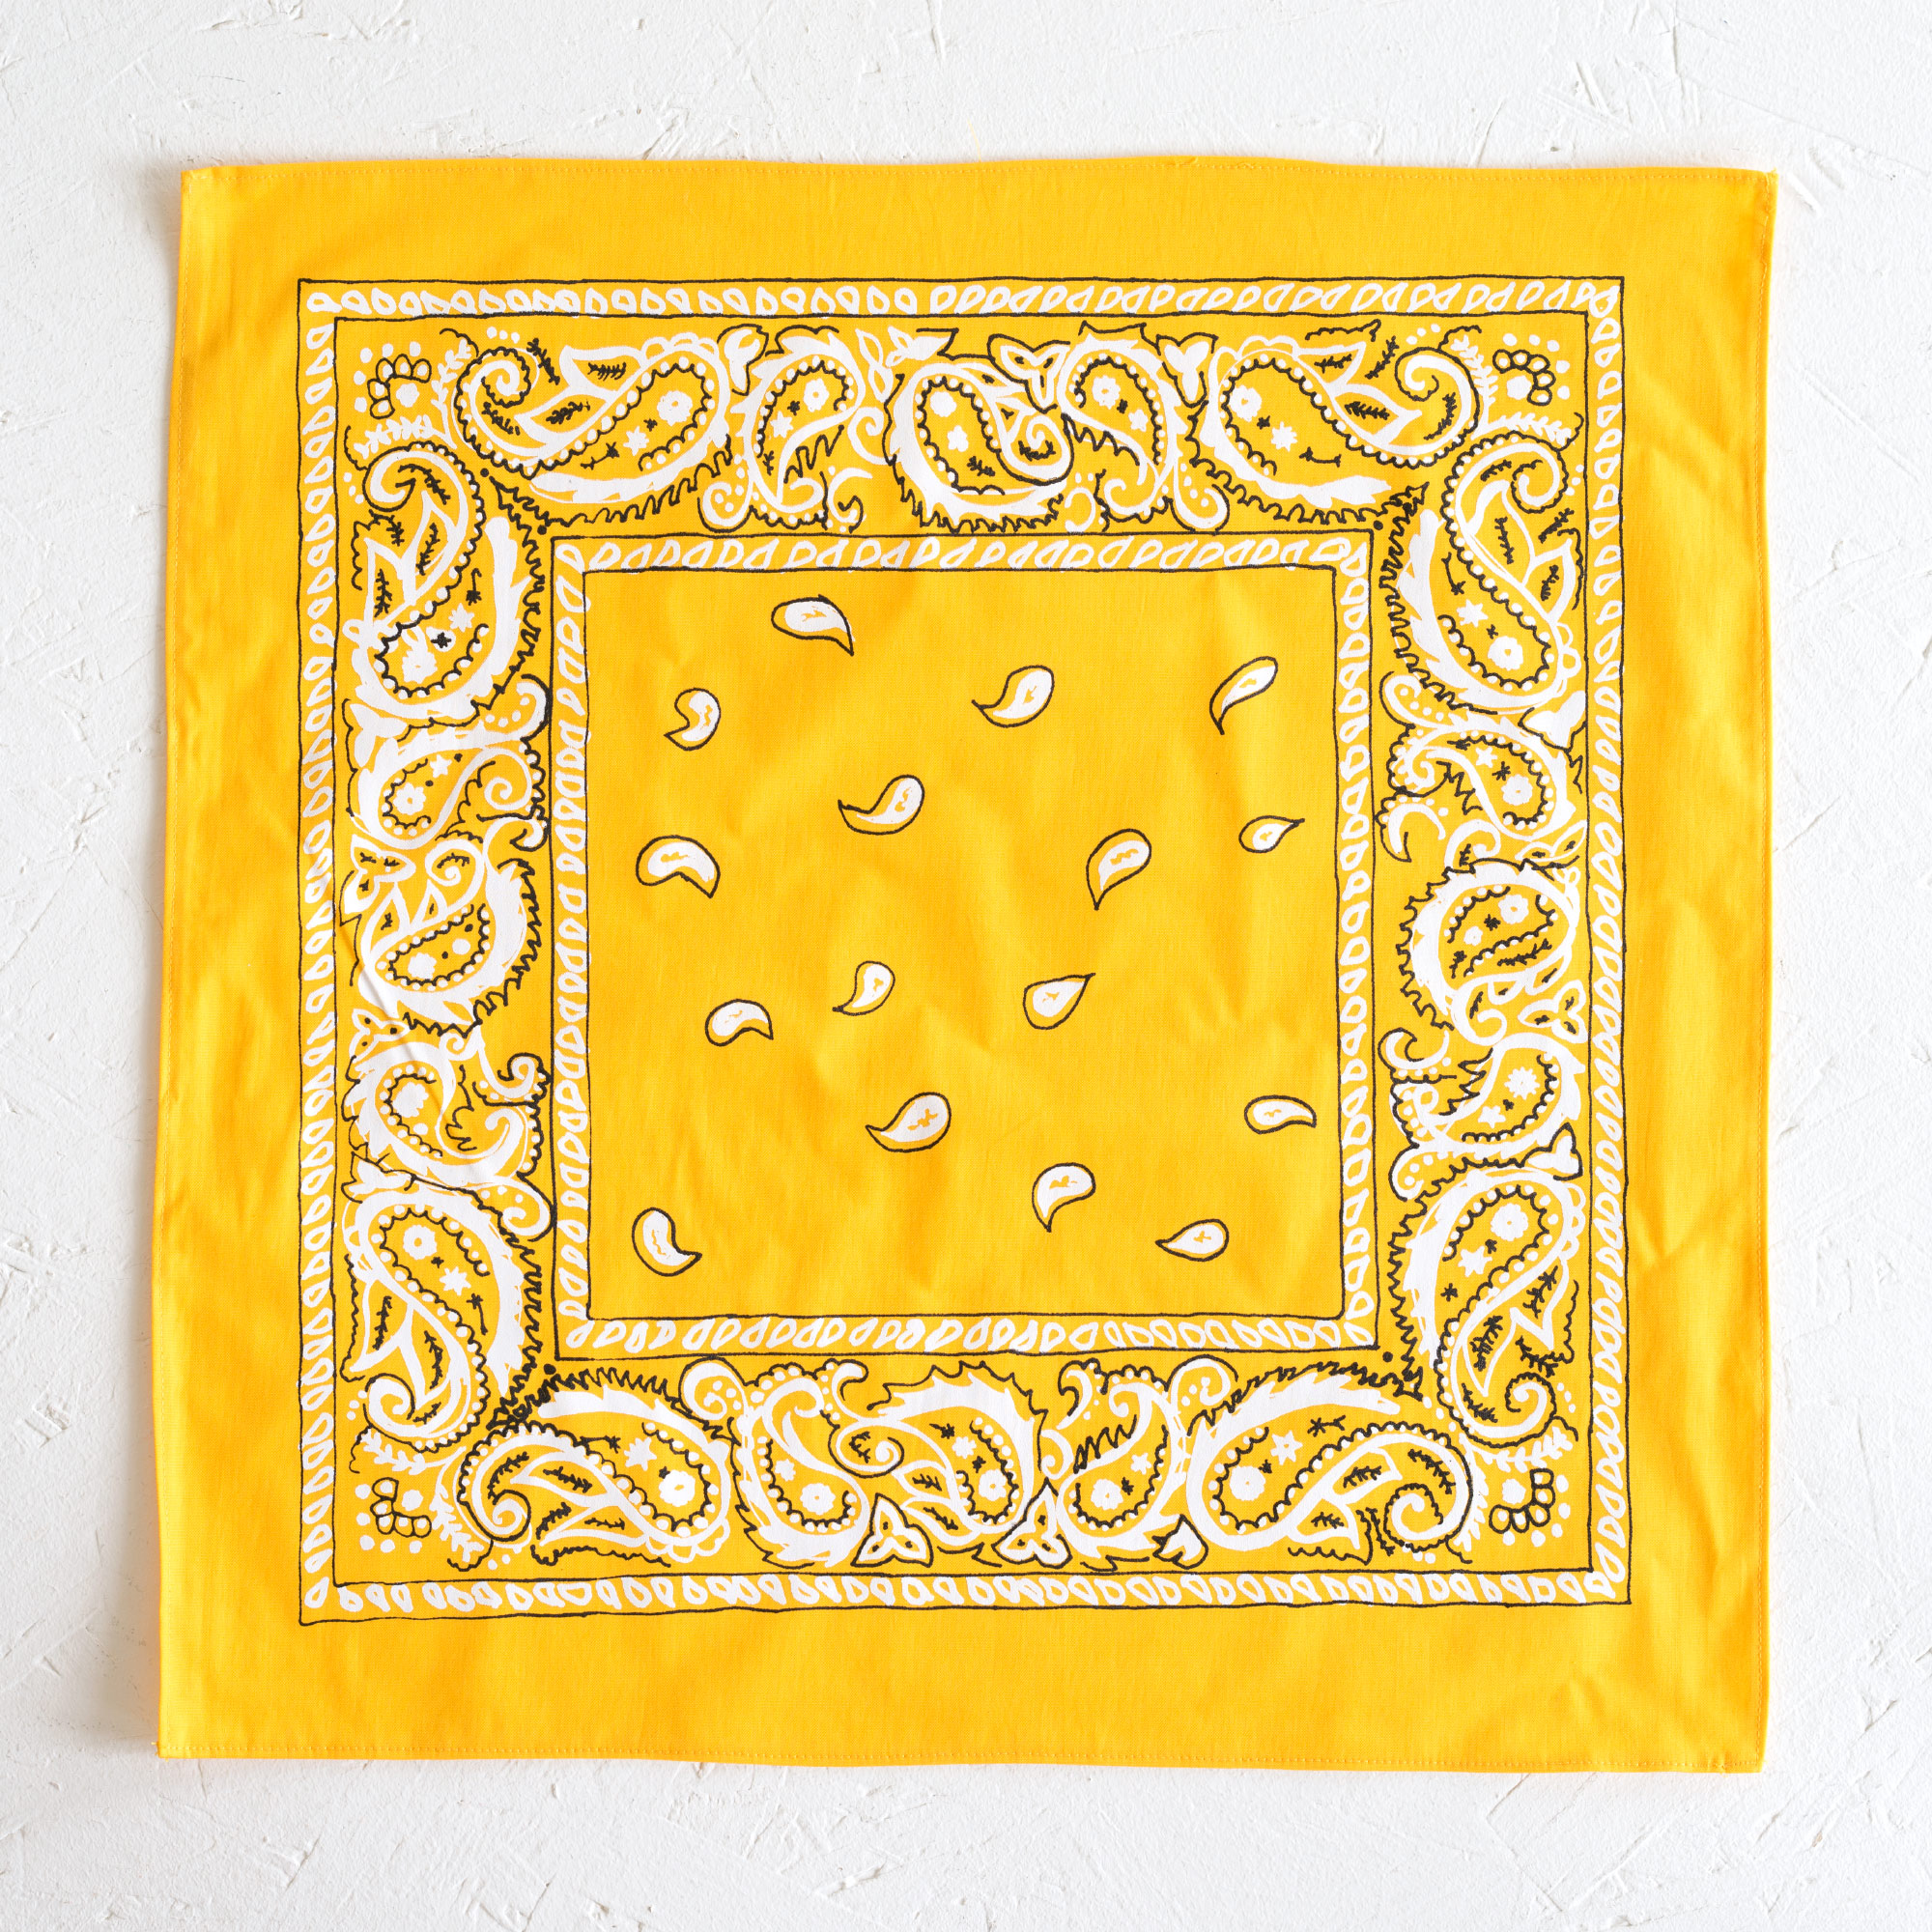 Nancy Davidson, *Hanky Code* (Yellow), 2016, Two color silkscreen on hand cut & sewn cotton, 17 x 17 inches (43.18 x 43.18 cm)